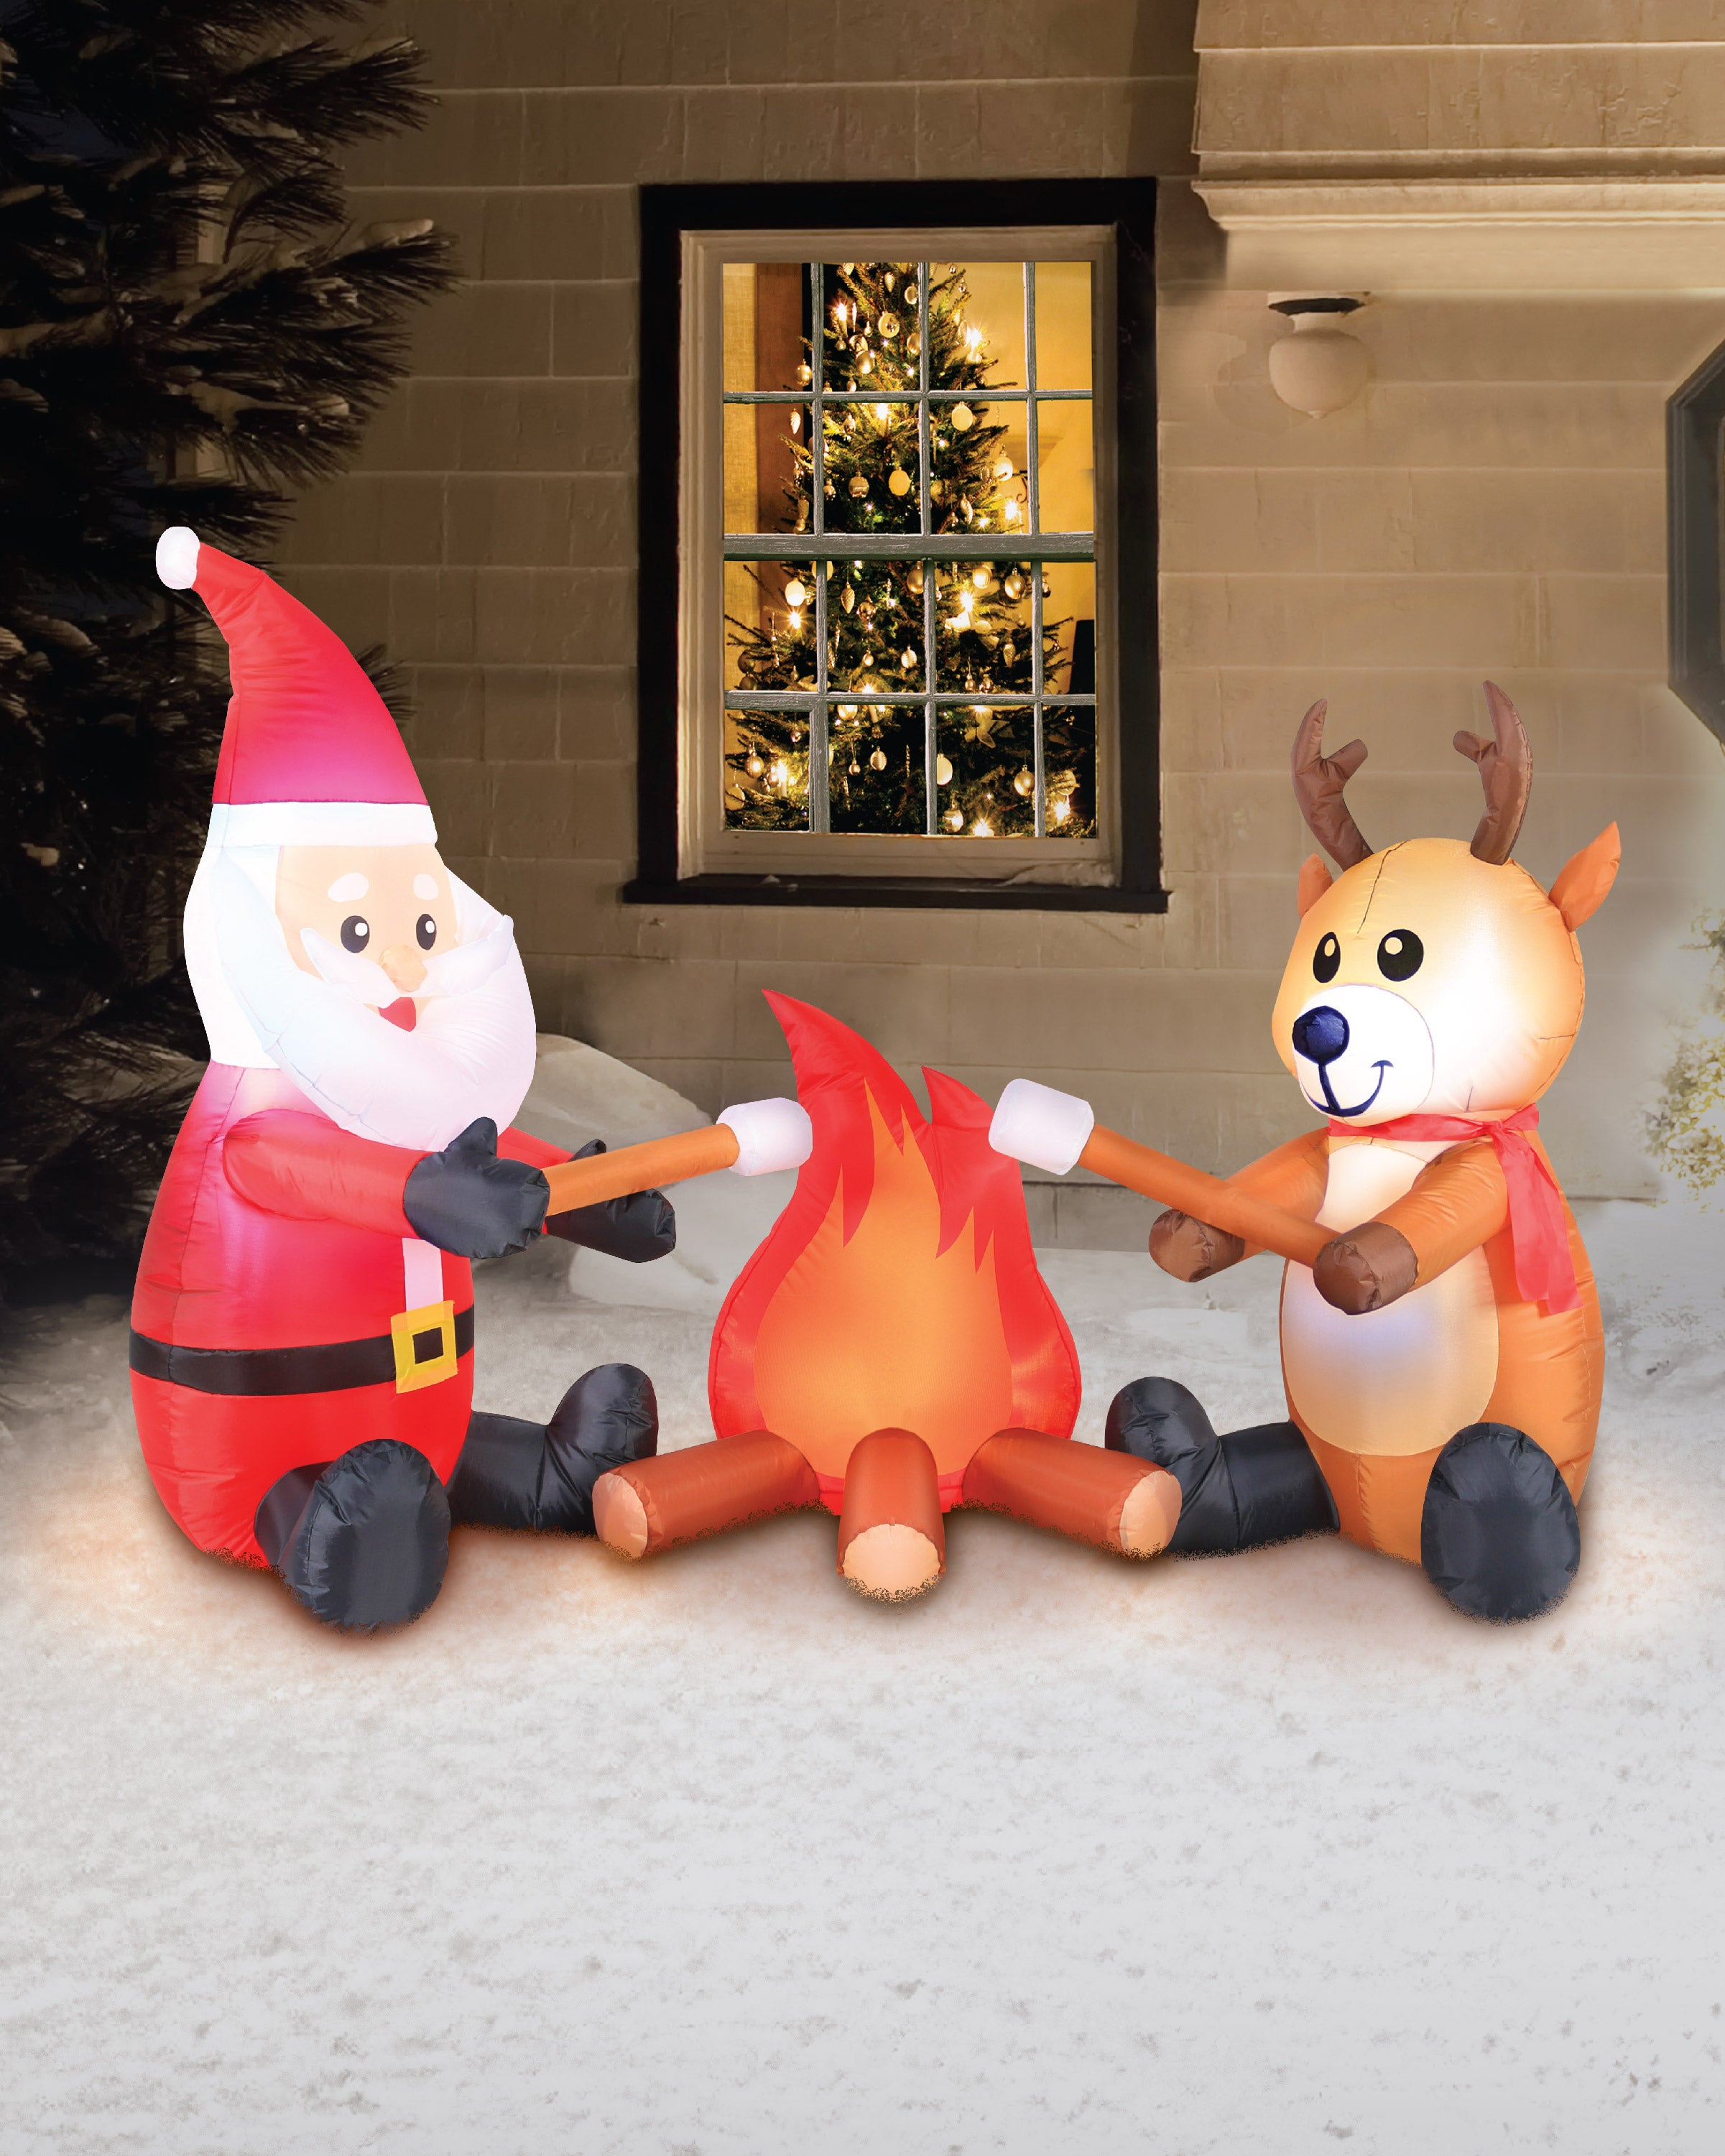 6' Inflatable Campfire Santa and Reindeer